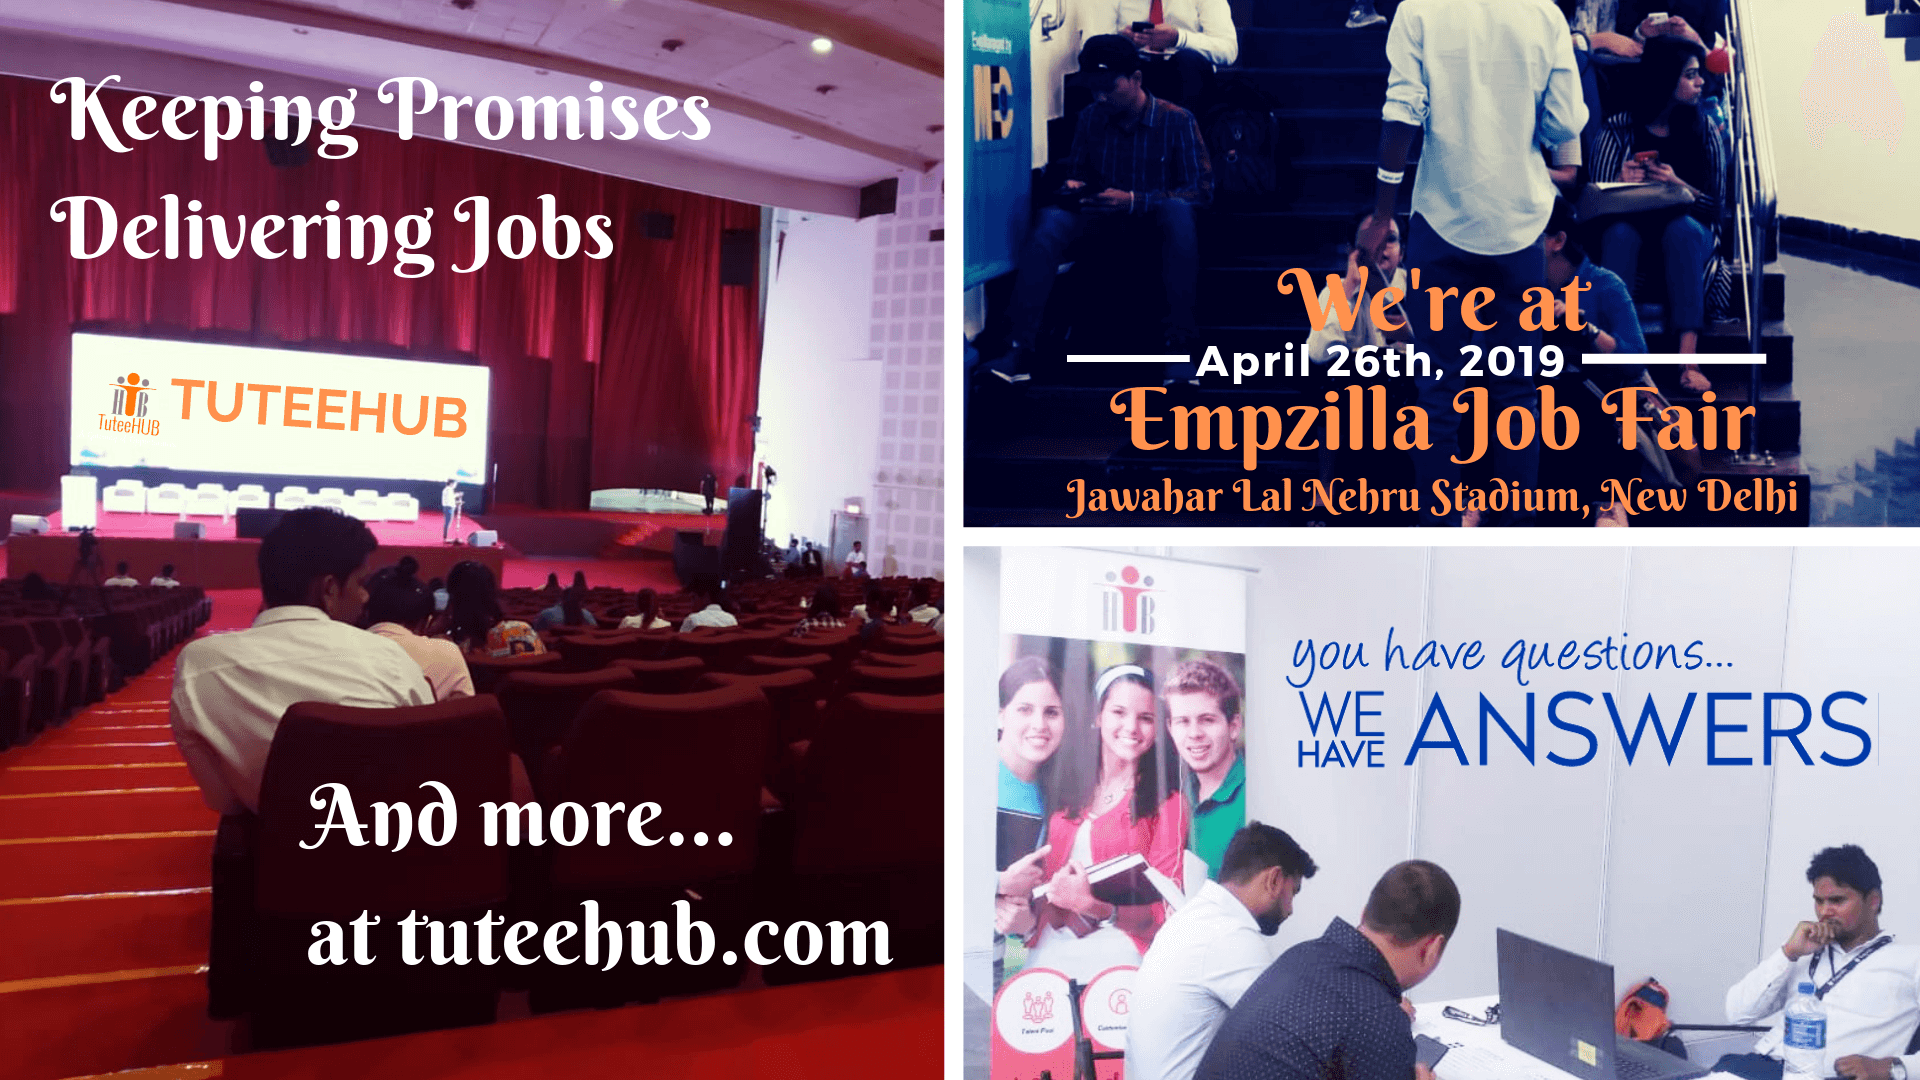 Hiring at EmpZilla Job Fair, Jawahar Lal Nehru Stadium, New Delhi